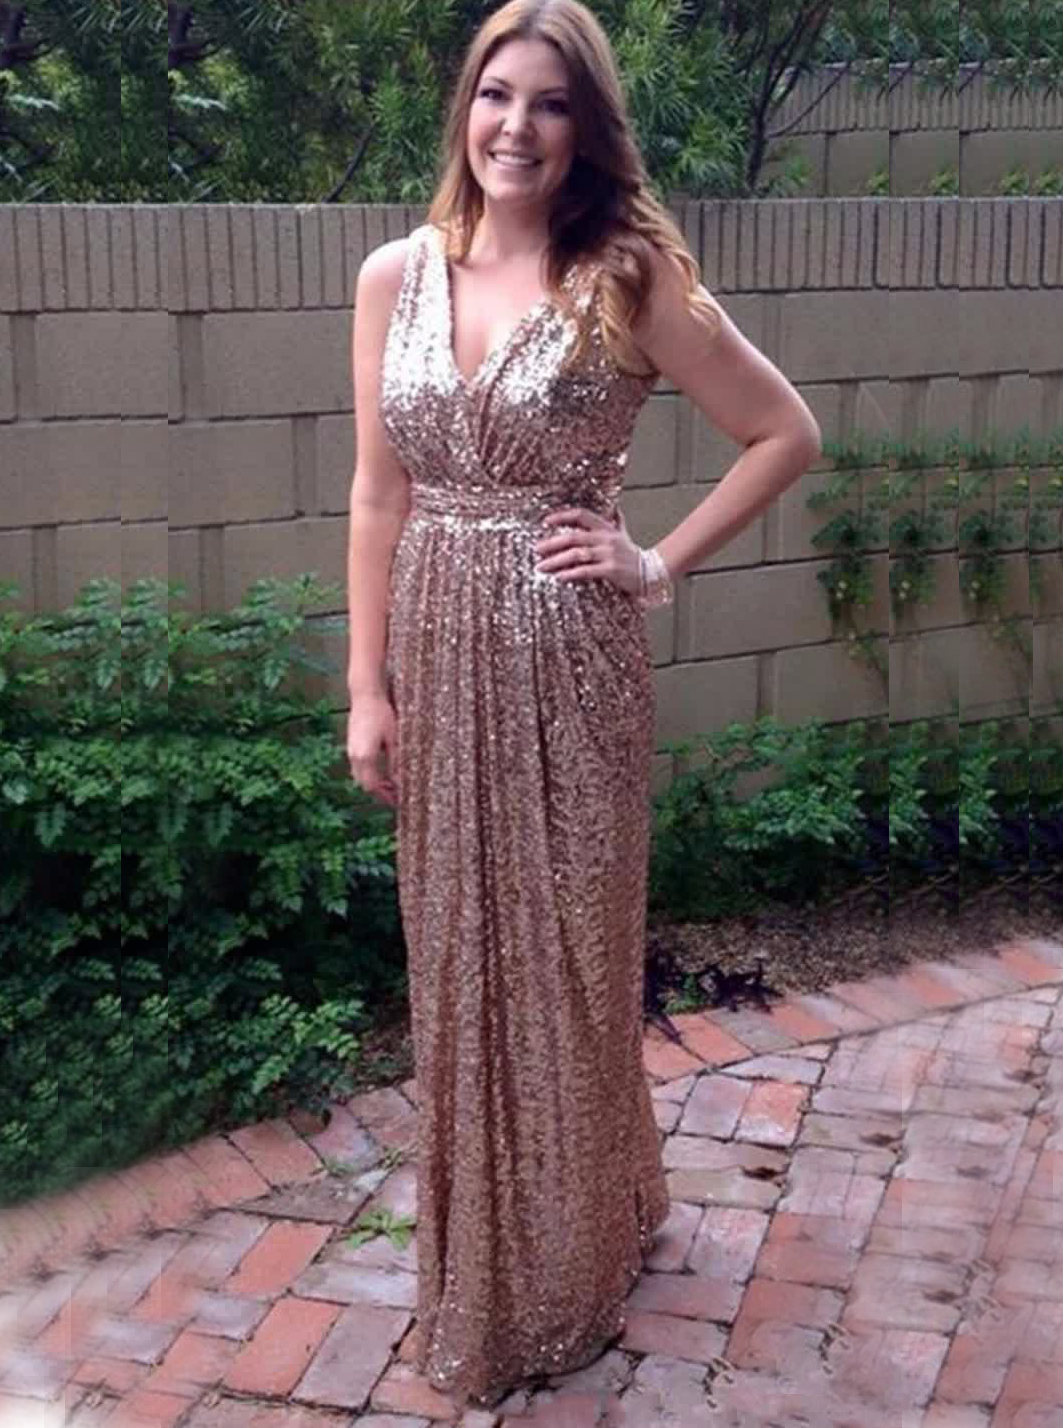 A-Line V-Neck Floor-Length Champagne Sequined Bridesmaid Dress фото